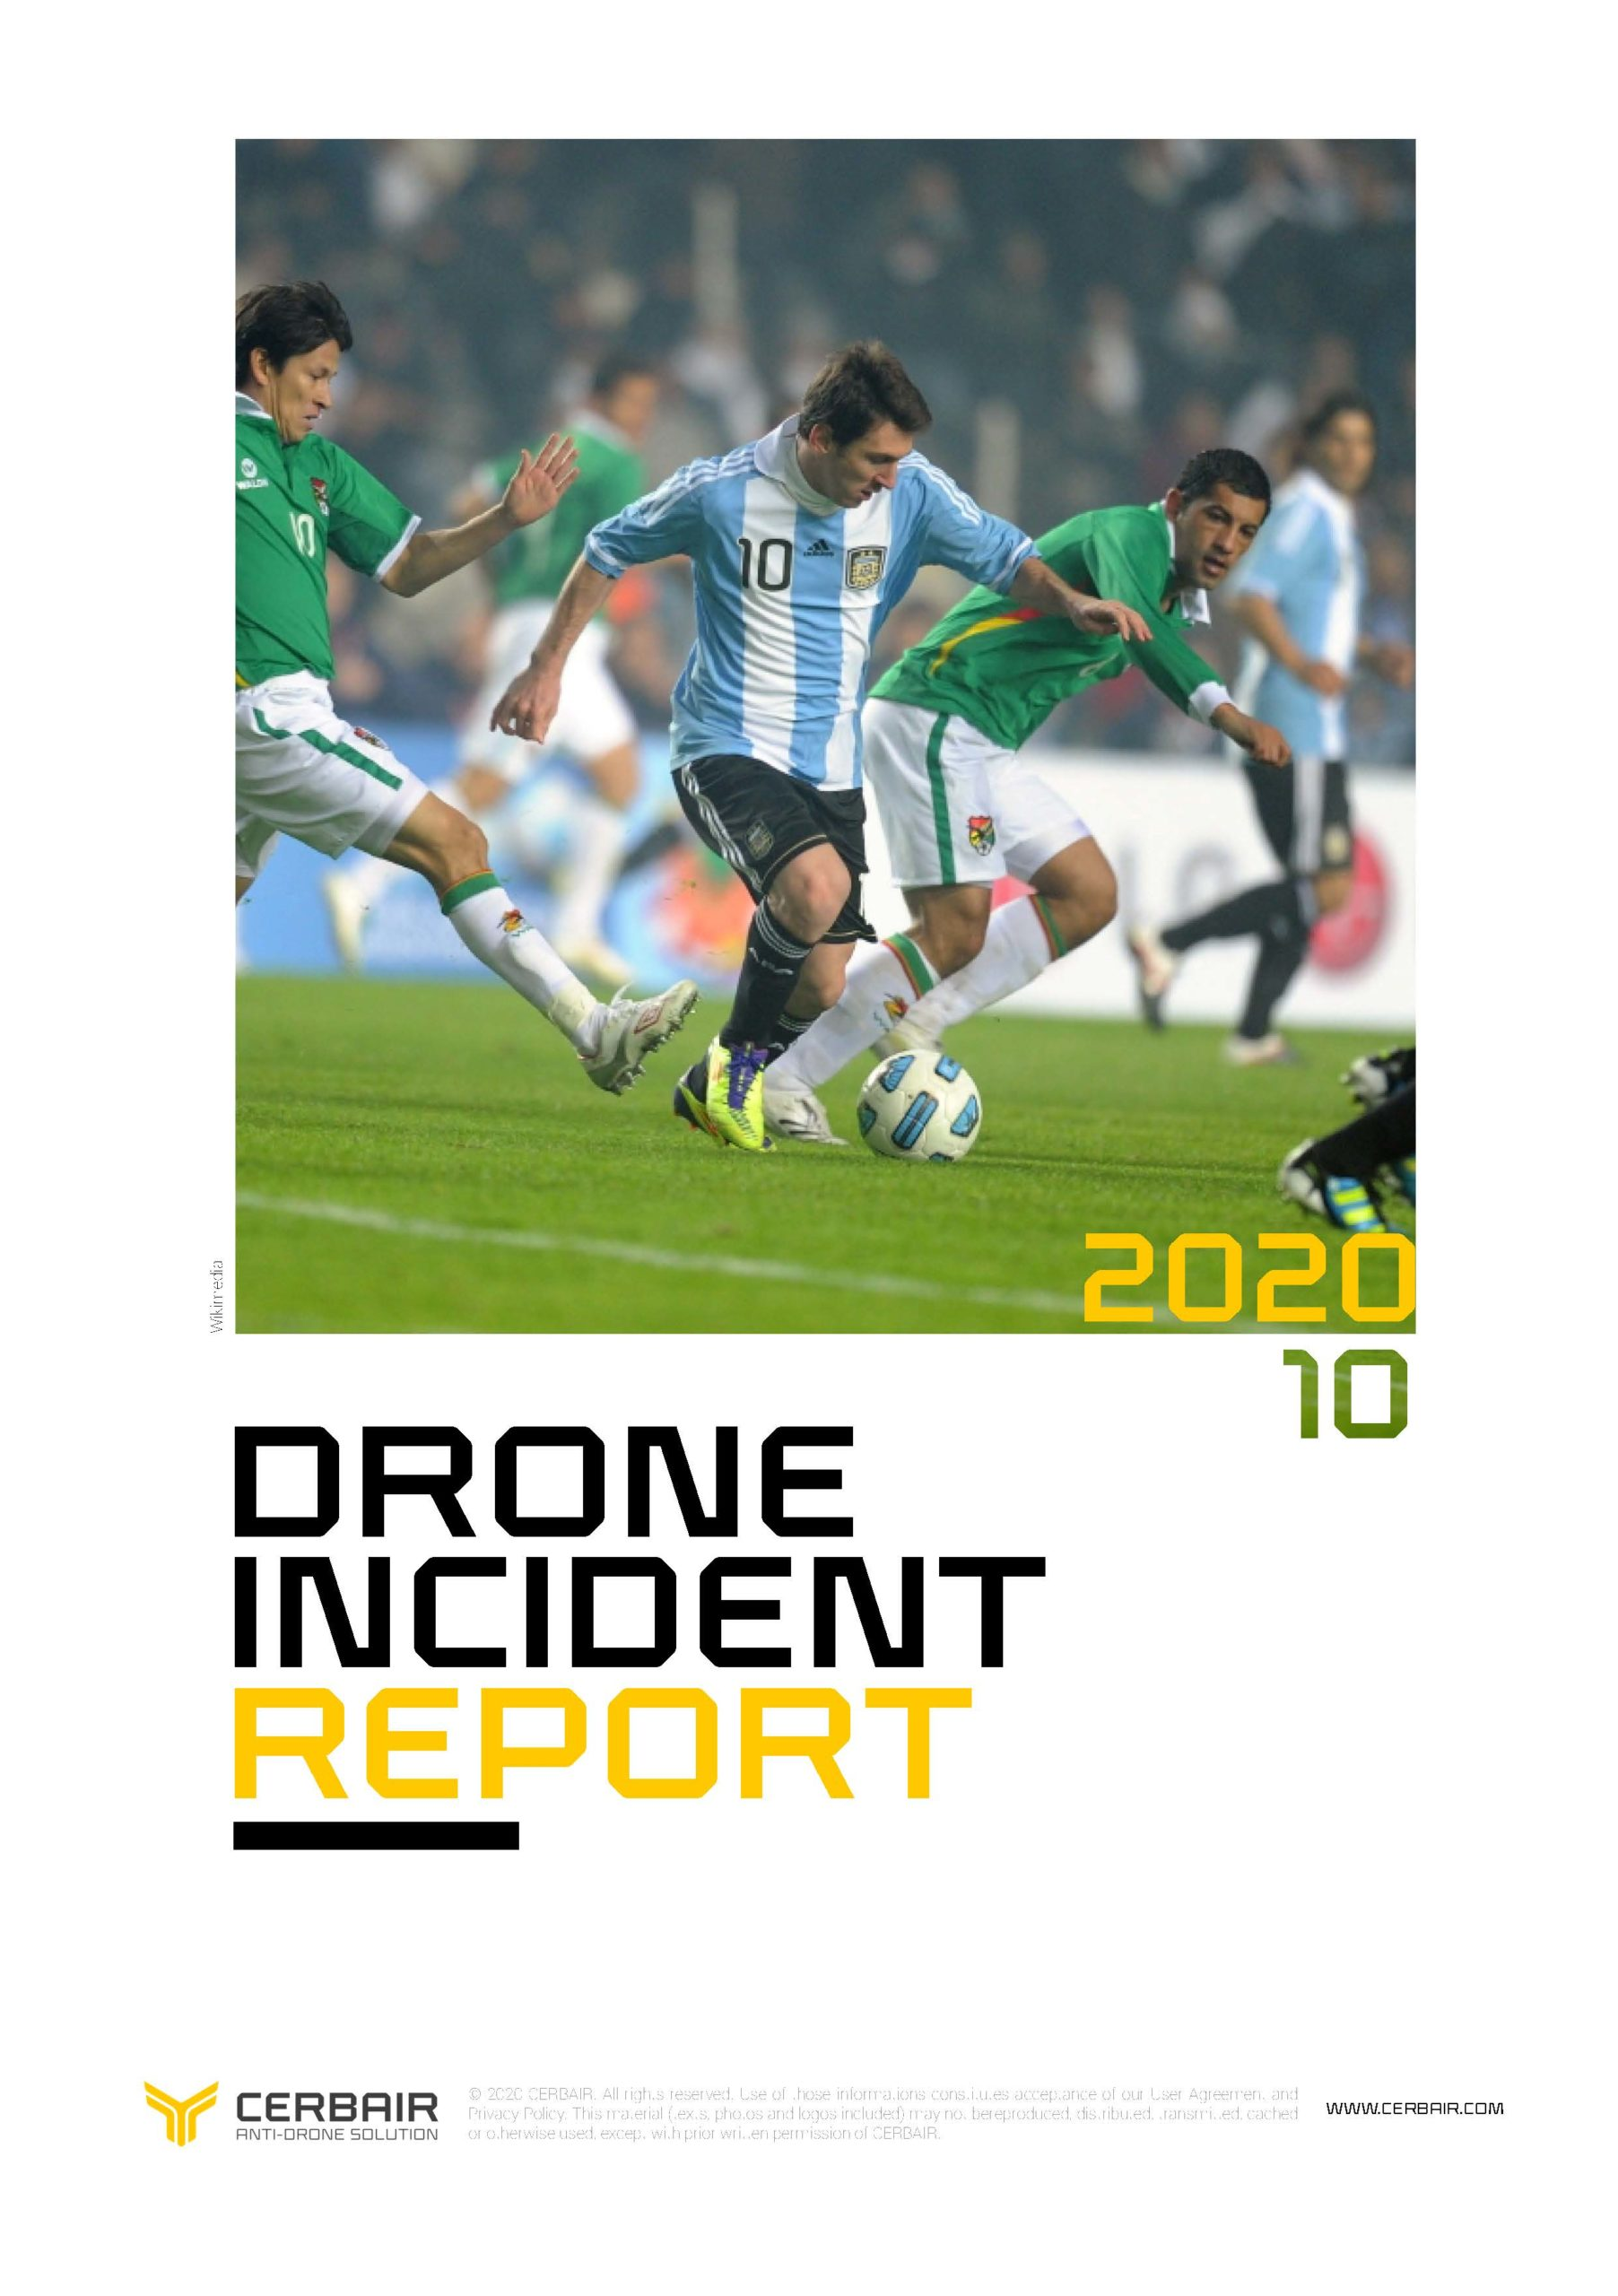 Drone Incident Report – OCT20